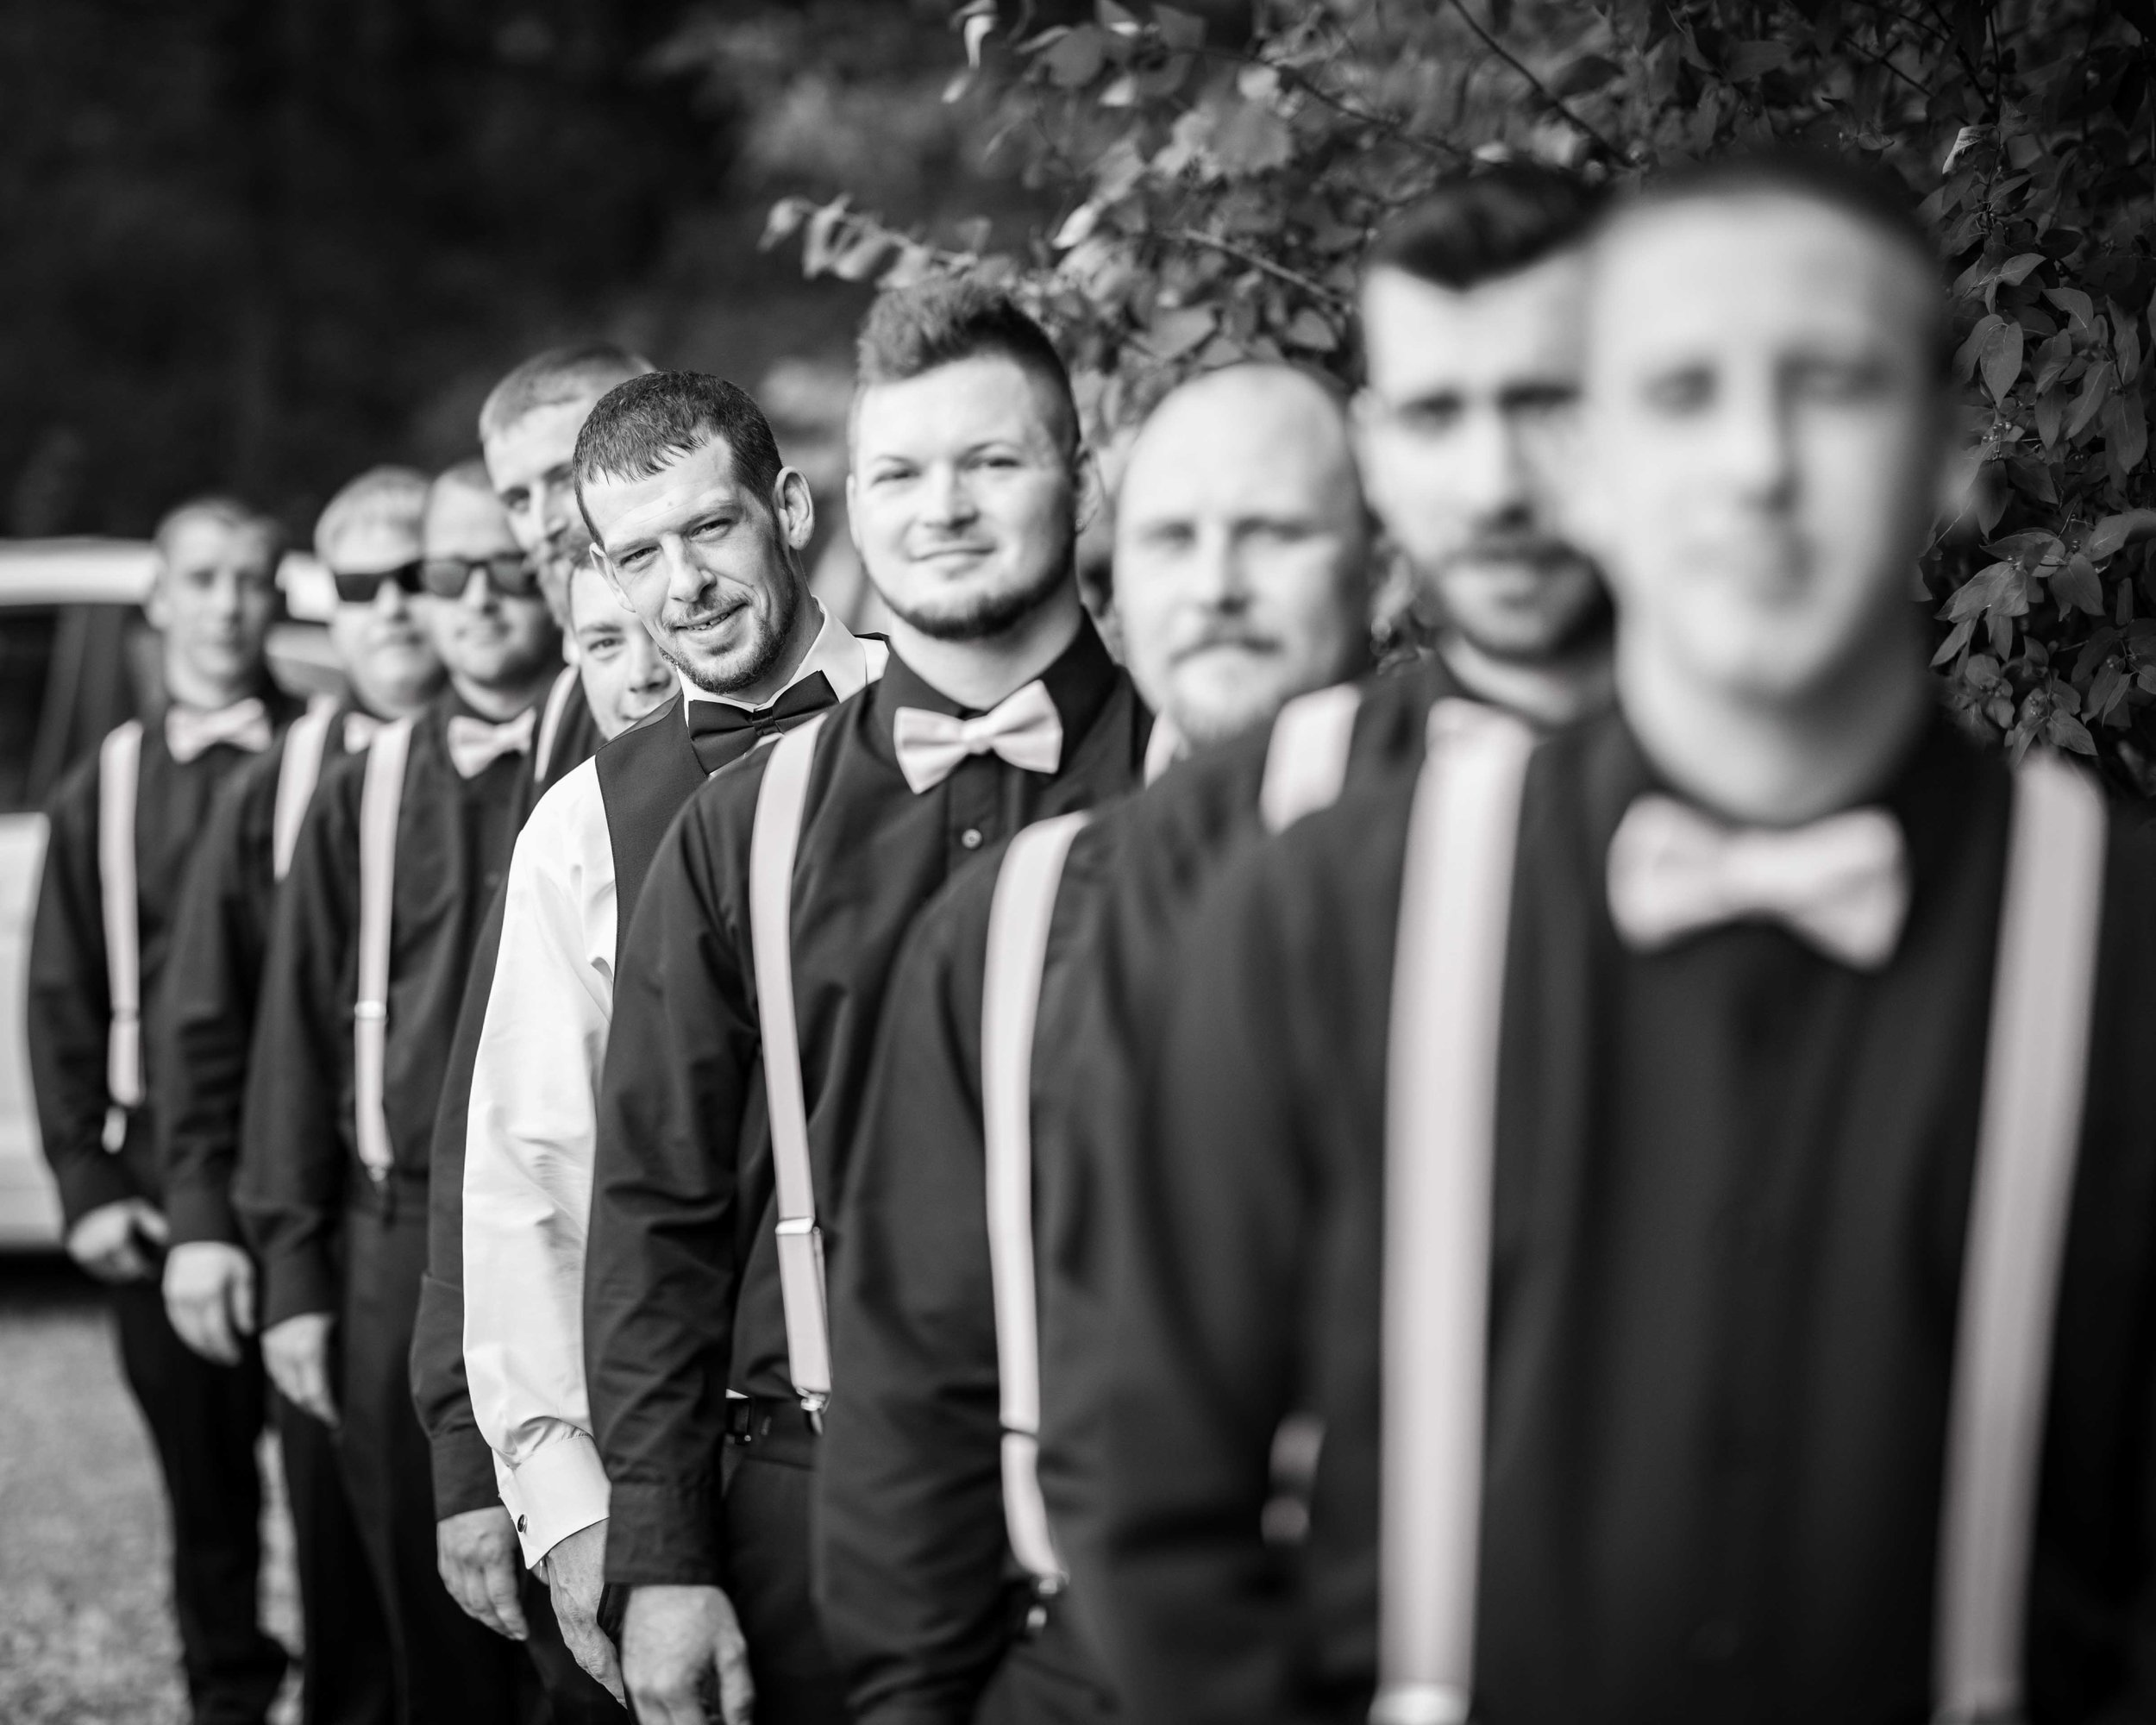 Grooms wedding party lines up for a black and white, focusing on the groom